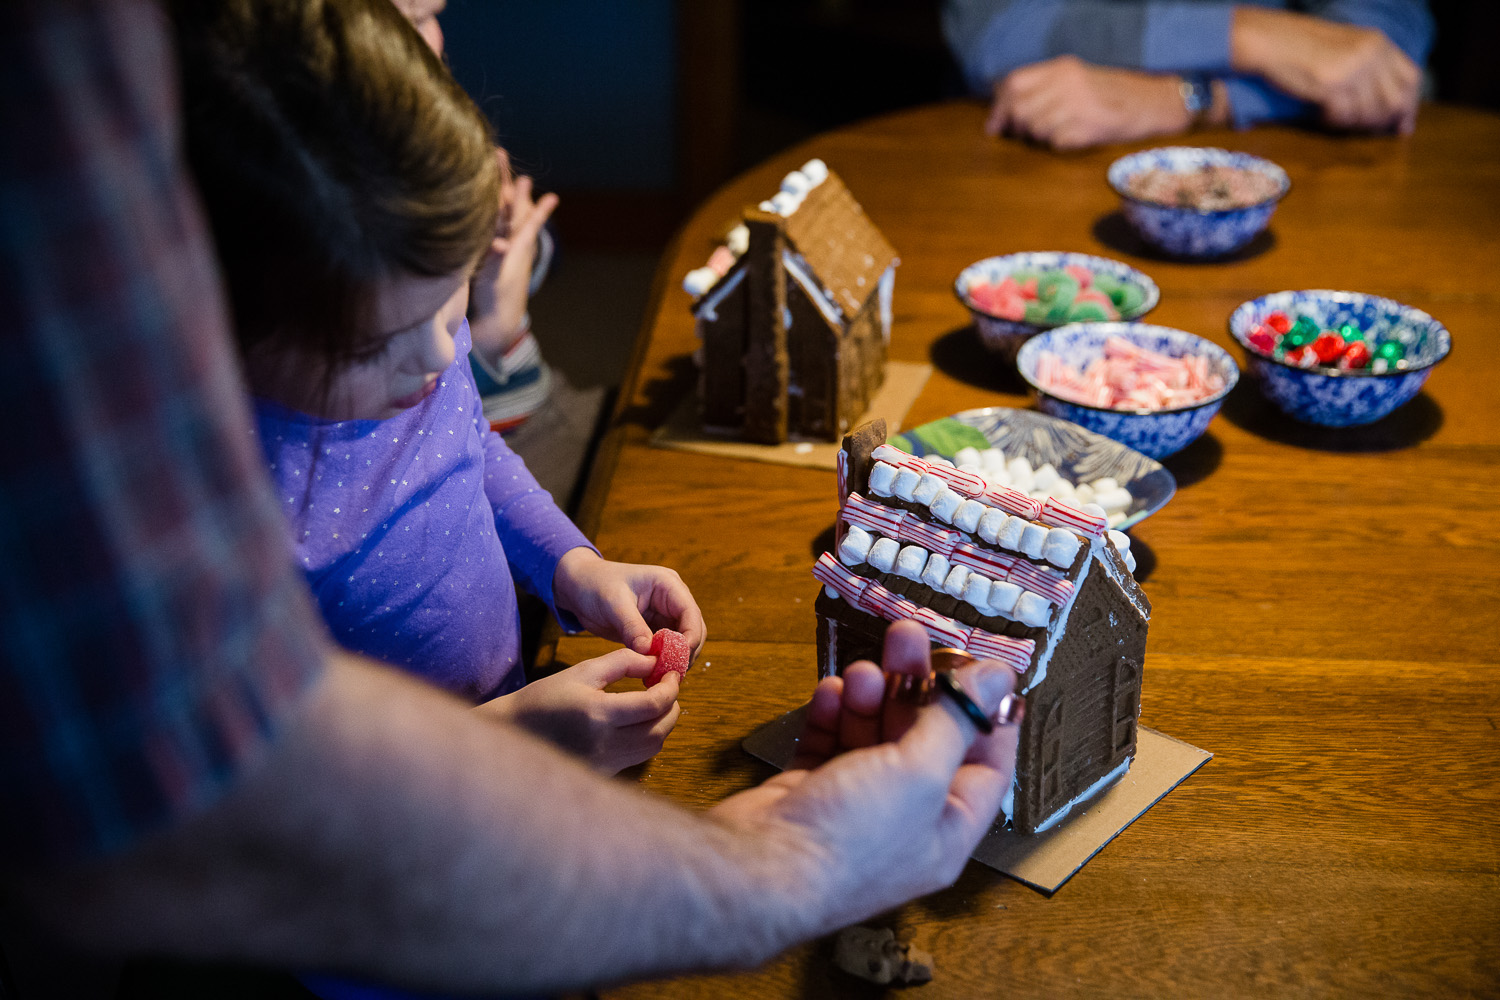 A little girl decorates a gingerbread house with her grandparents; family storytelling photography.